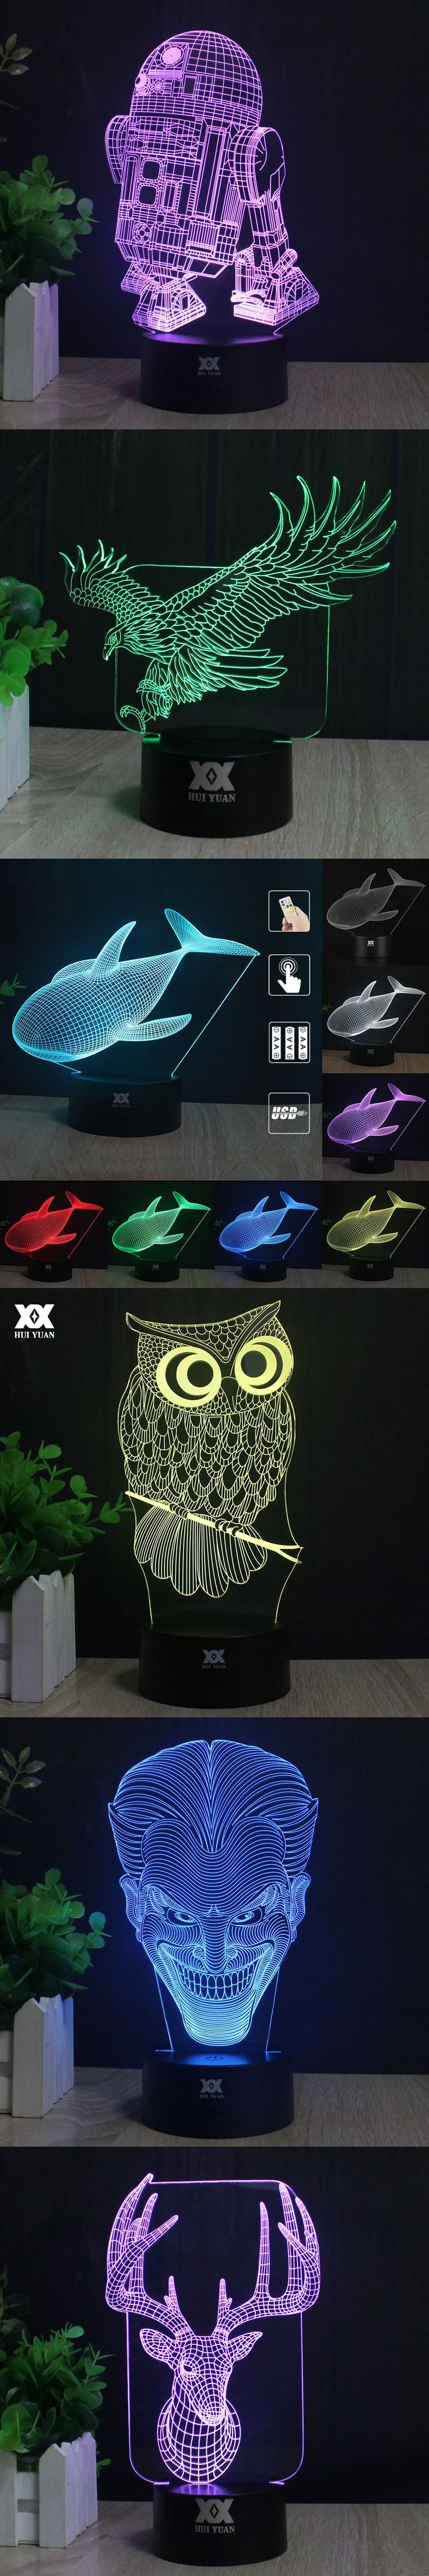 Owl Star Wars 3D Lamp Elk Death Star BB-8 Titanium fighters Batman LED Night Lights USB Child's Gift HUI YUAN Brand